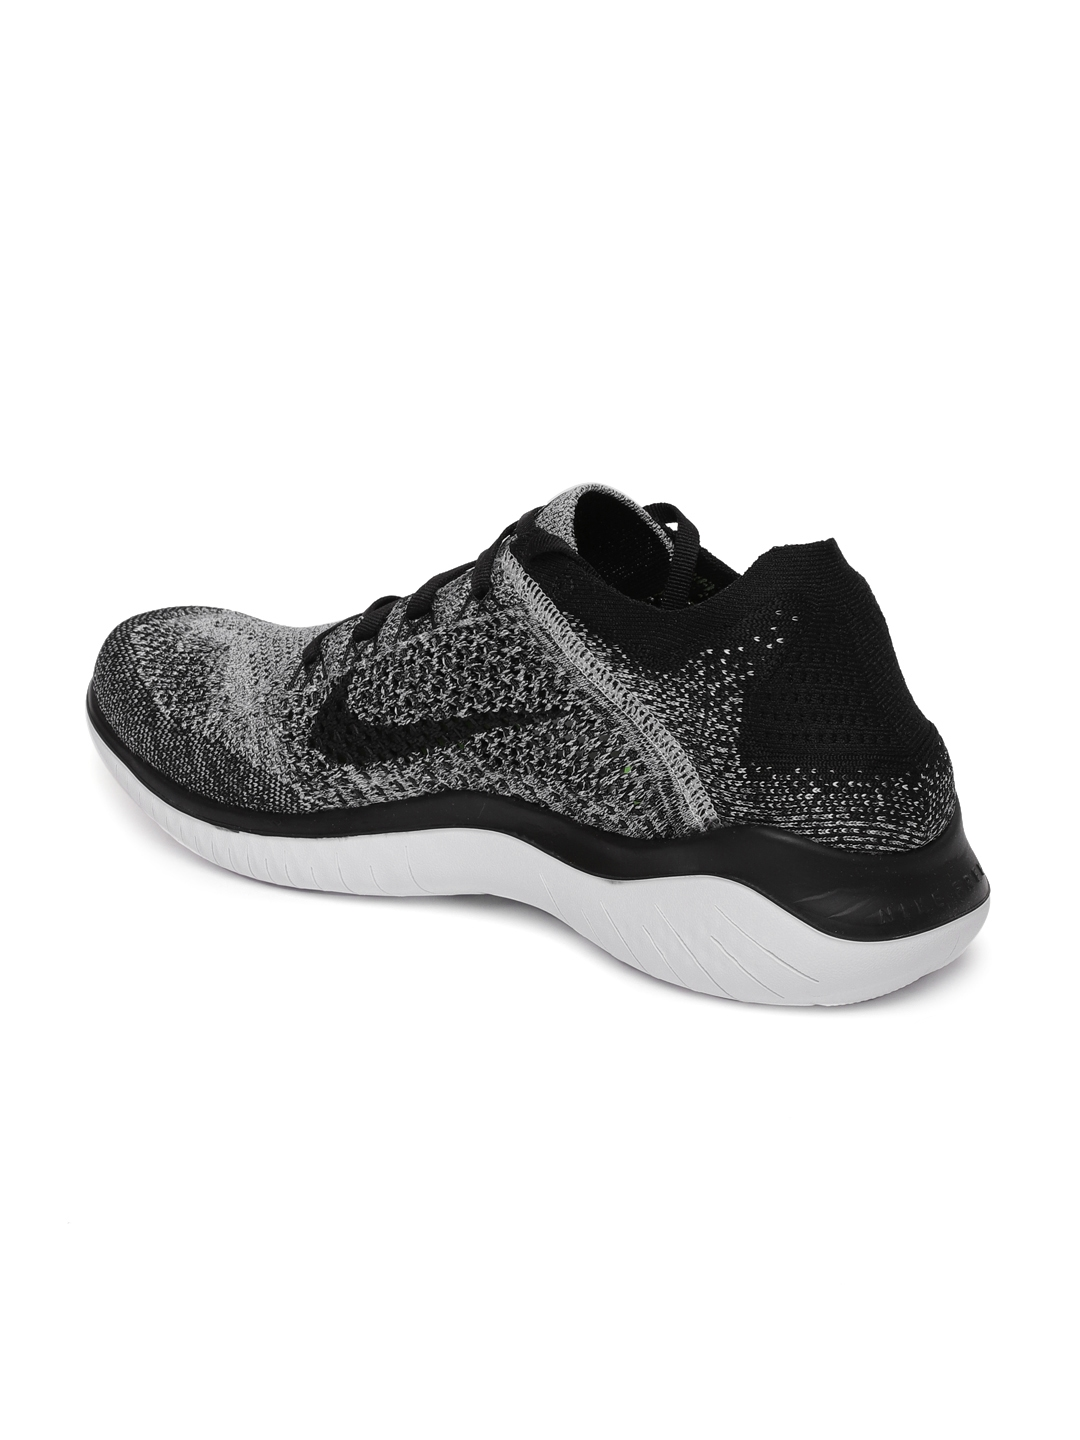 f740f375dd9 Buy Nike Men White   Black Free RN Flyknit 2018 Running Shoes ...